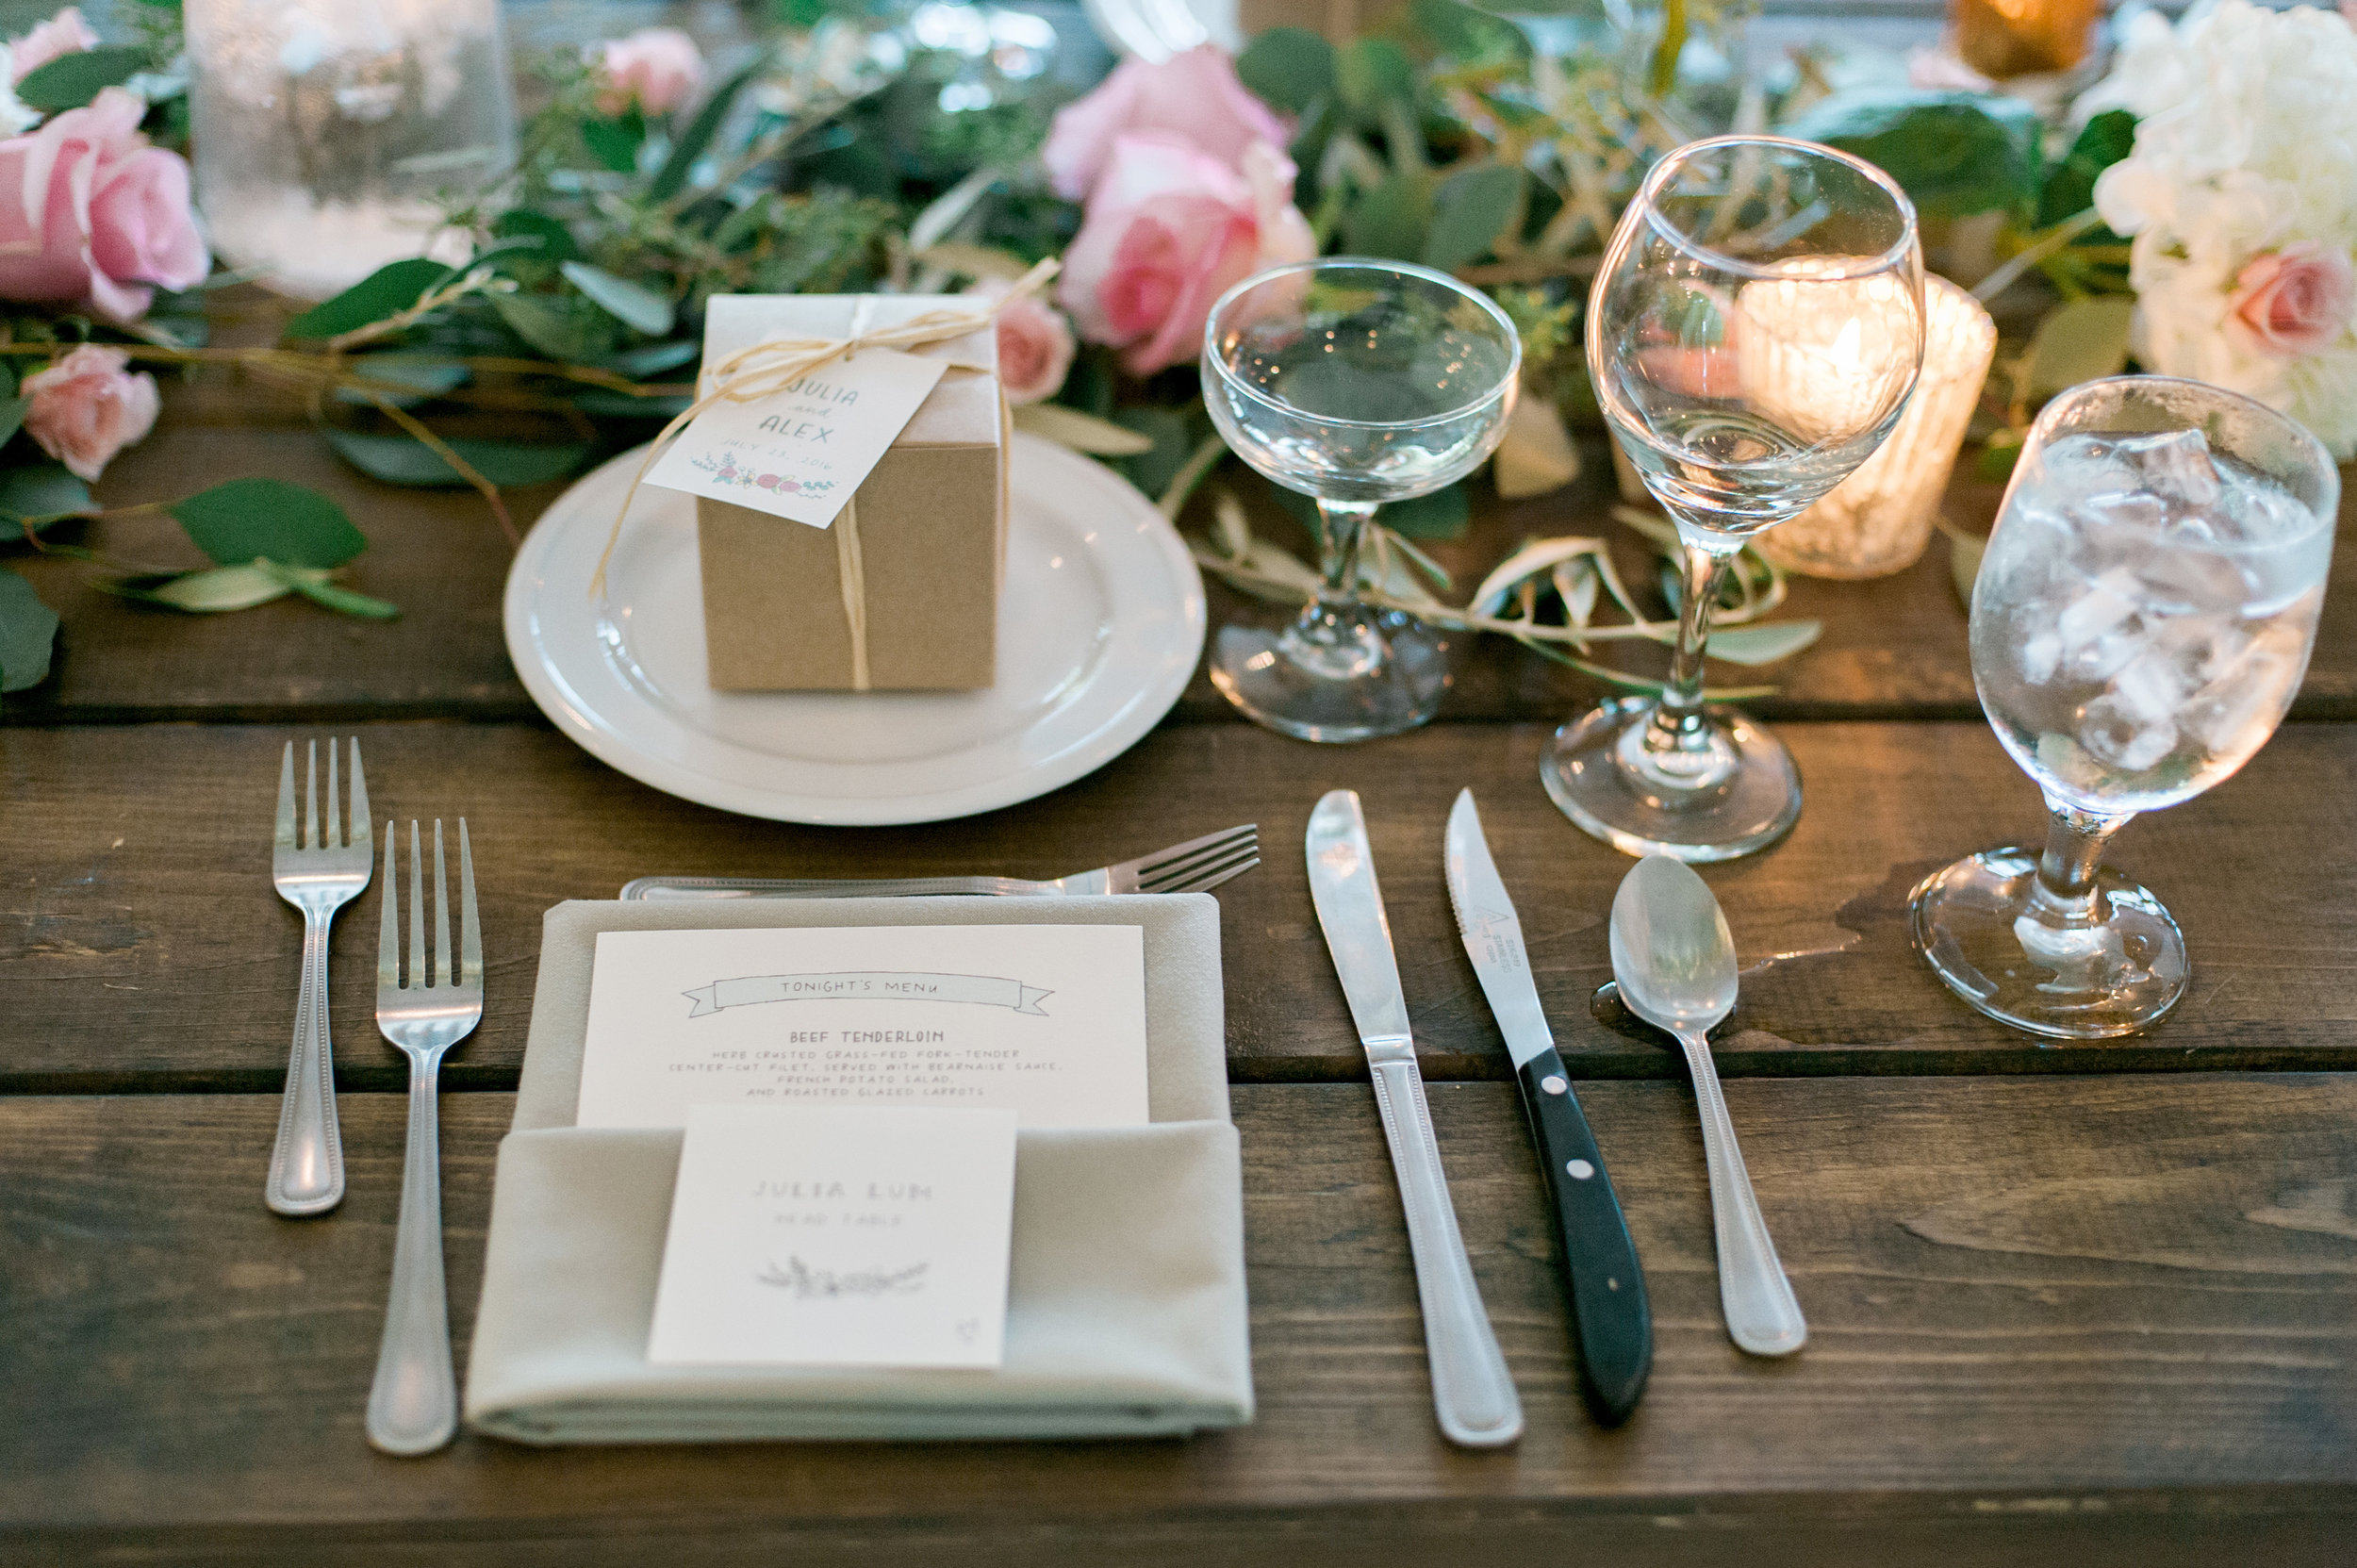 Venue & Flowers: Camrose Hill Flower Farm   Photography: Emily Steffen Photography   Videography: Sunset Blue Productions   Hair/Makeup: Hayley Sachs Artistry   Stationery:  Printerette Press   Catering: Chowgirls Killer Catering   Bartending: With a Twist   Dessert: Pattiserie 46 and Buttercream Bakery   Coffee: Coffee Cart   Ceremony Music: Loring String Quartet   Reception Entertainment: Adagio   Rentals: Ultimate Events   Gown: Allure Bridals, Our Shop